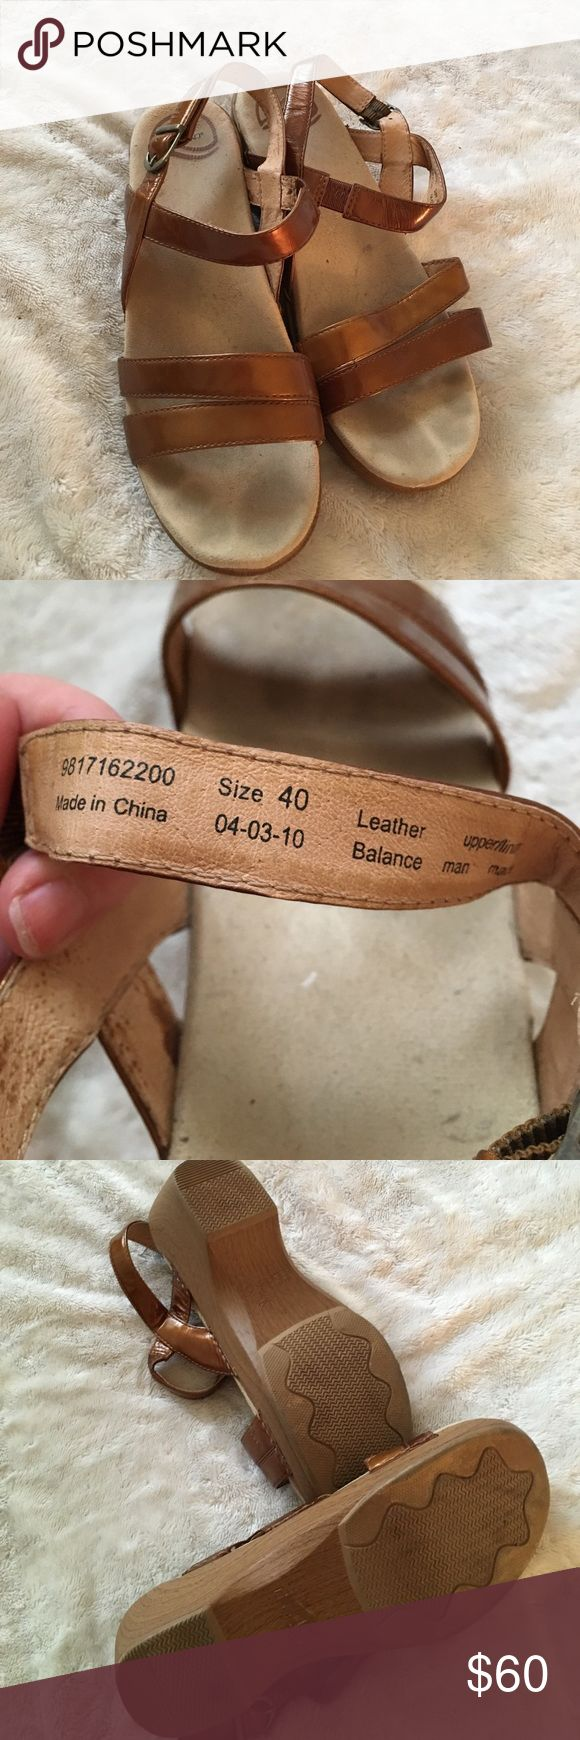 FLASH SALE! Half hour!  Dansko sandals - size 40 Amazing sandals! Padded footbed, leather upper, the super comfort from dansko. You can wear them all day long. They are awesome! Dansko Shoes Sandals